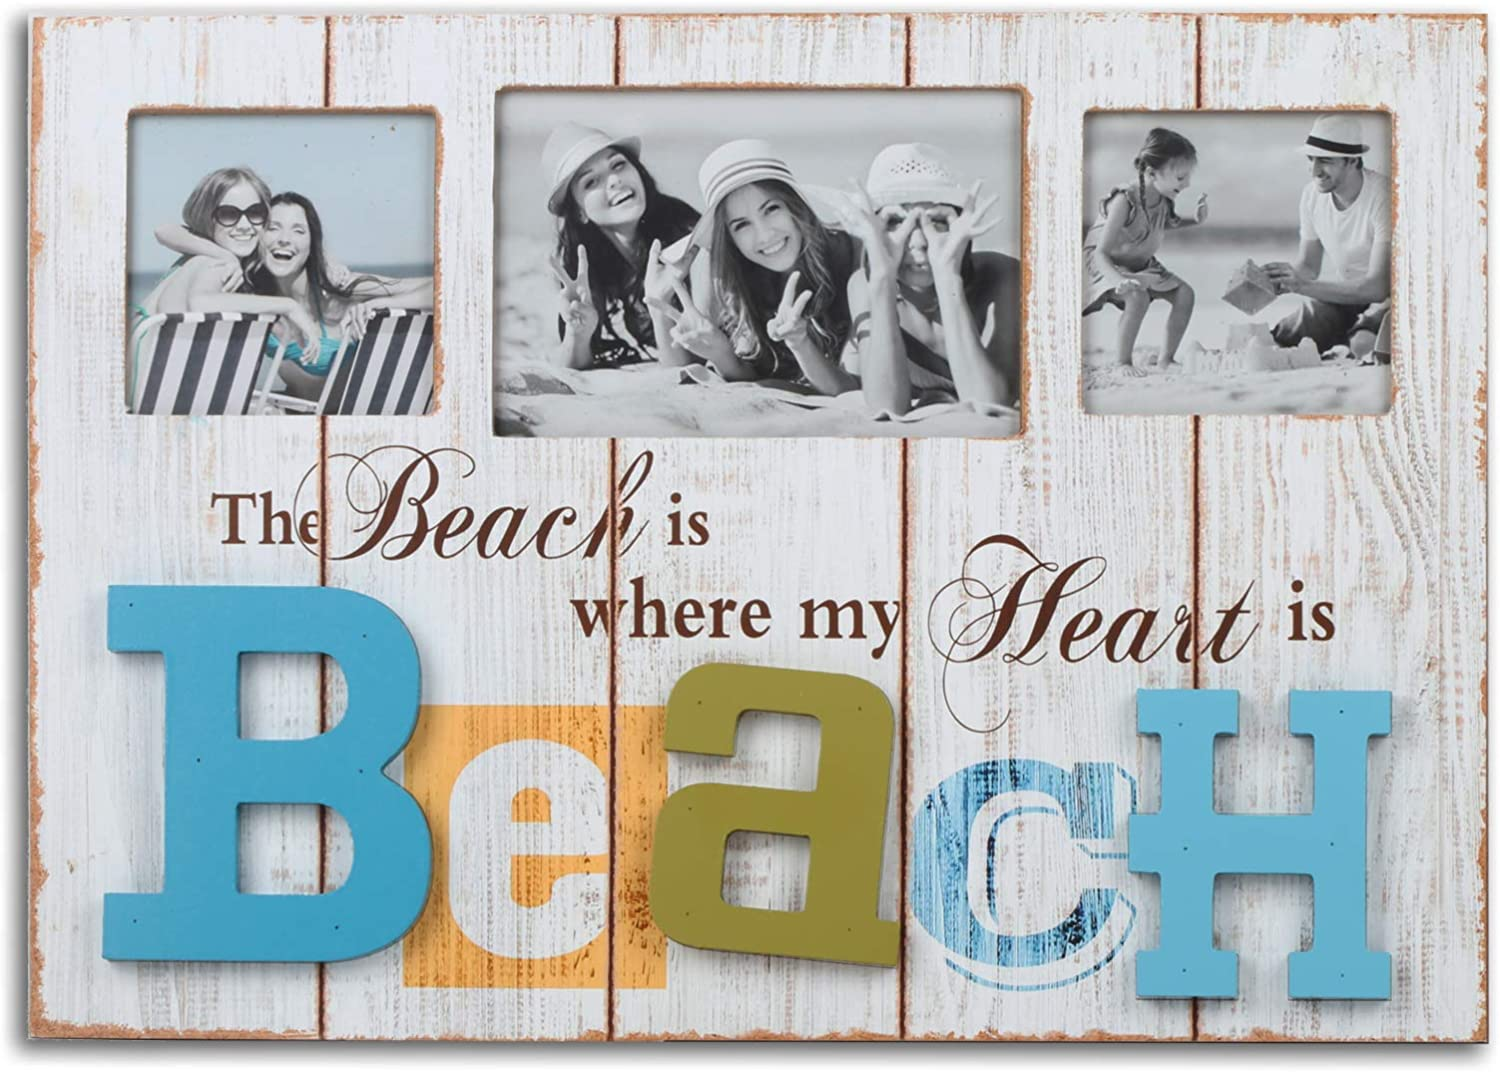 Beach Theme Collage Photo Frame for Home Wall Decor. Rustic Distressed Design with Nautical Theme for Beach House Decoration - Beach Version